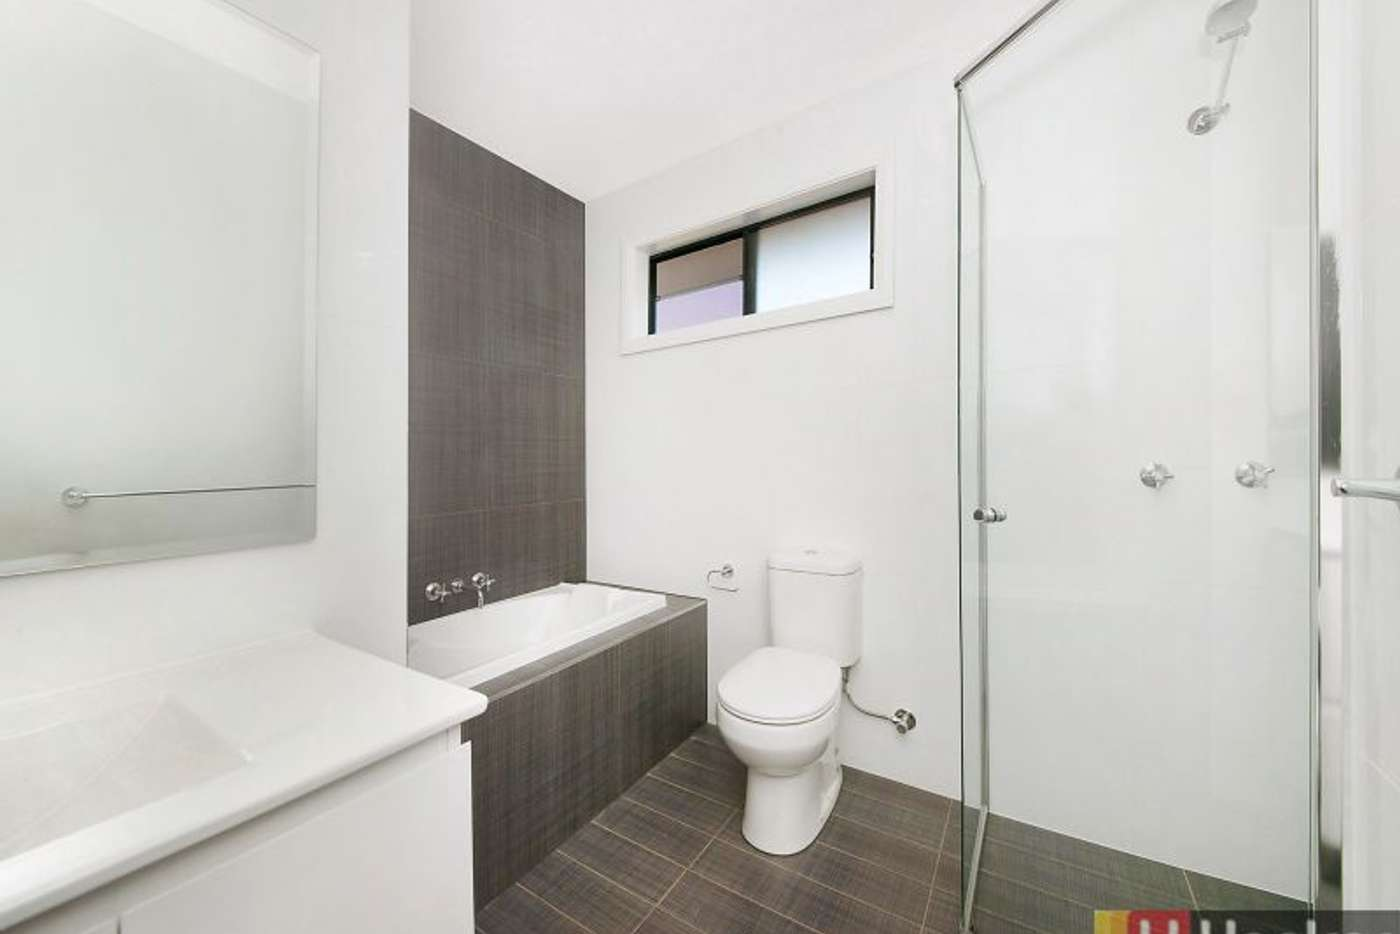 Sixth view of Homely house listing, 128b Lindesay St, Campbelltown NSW 2560